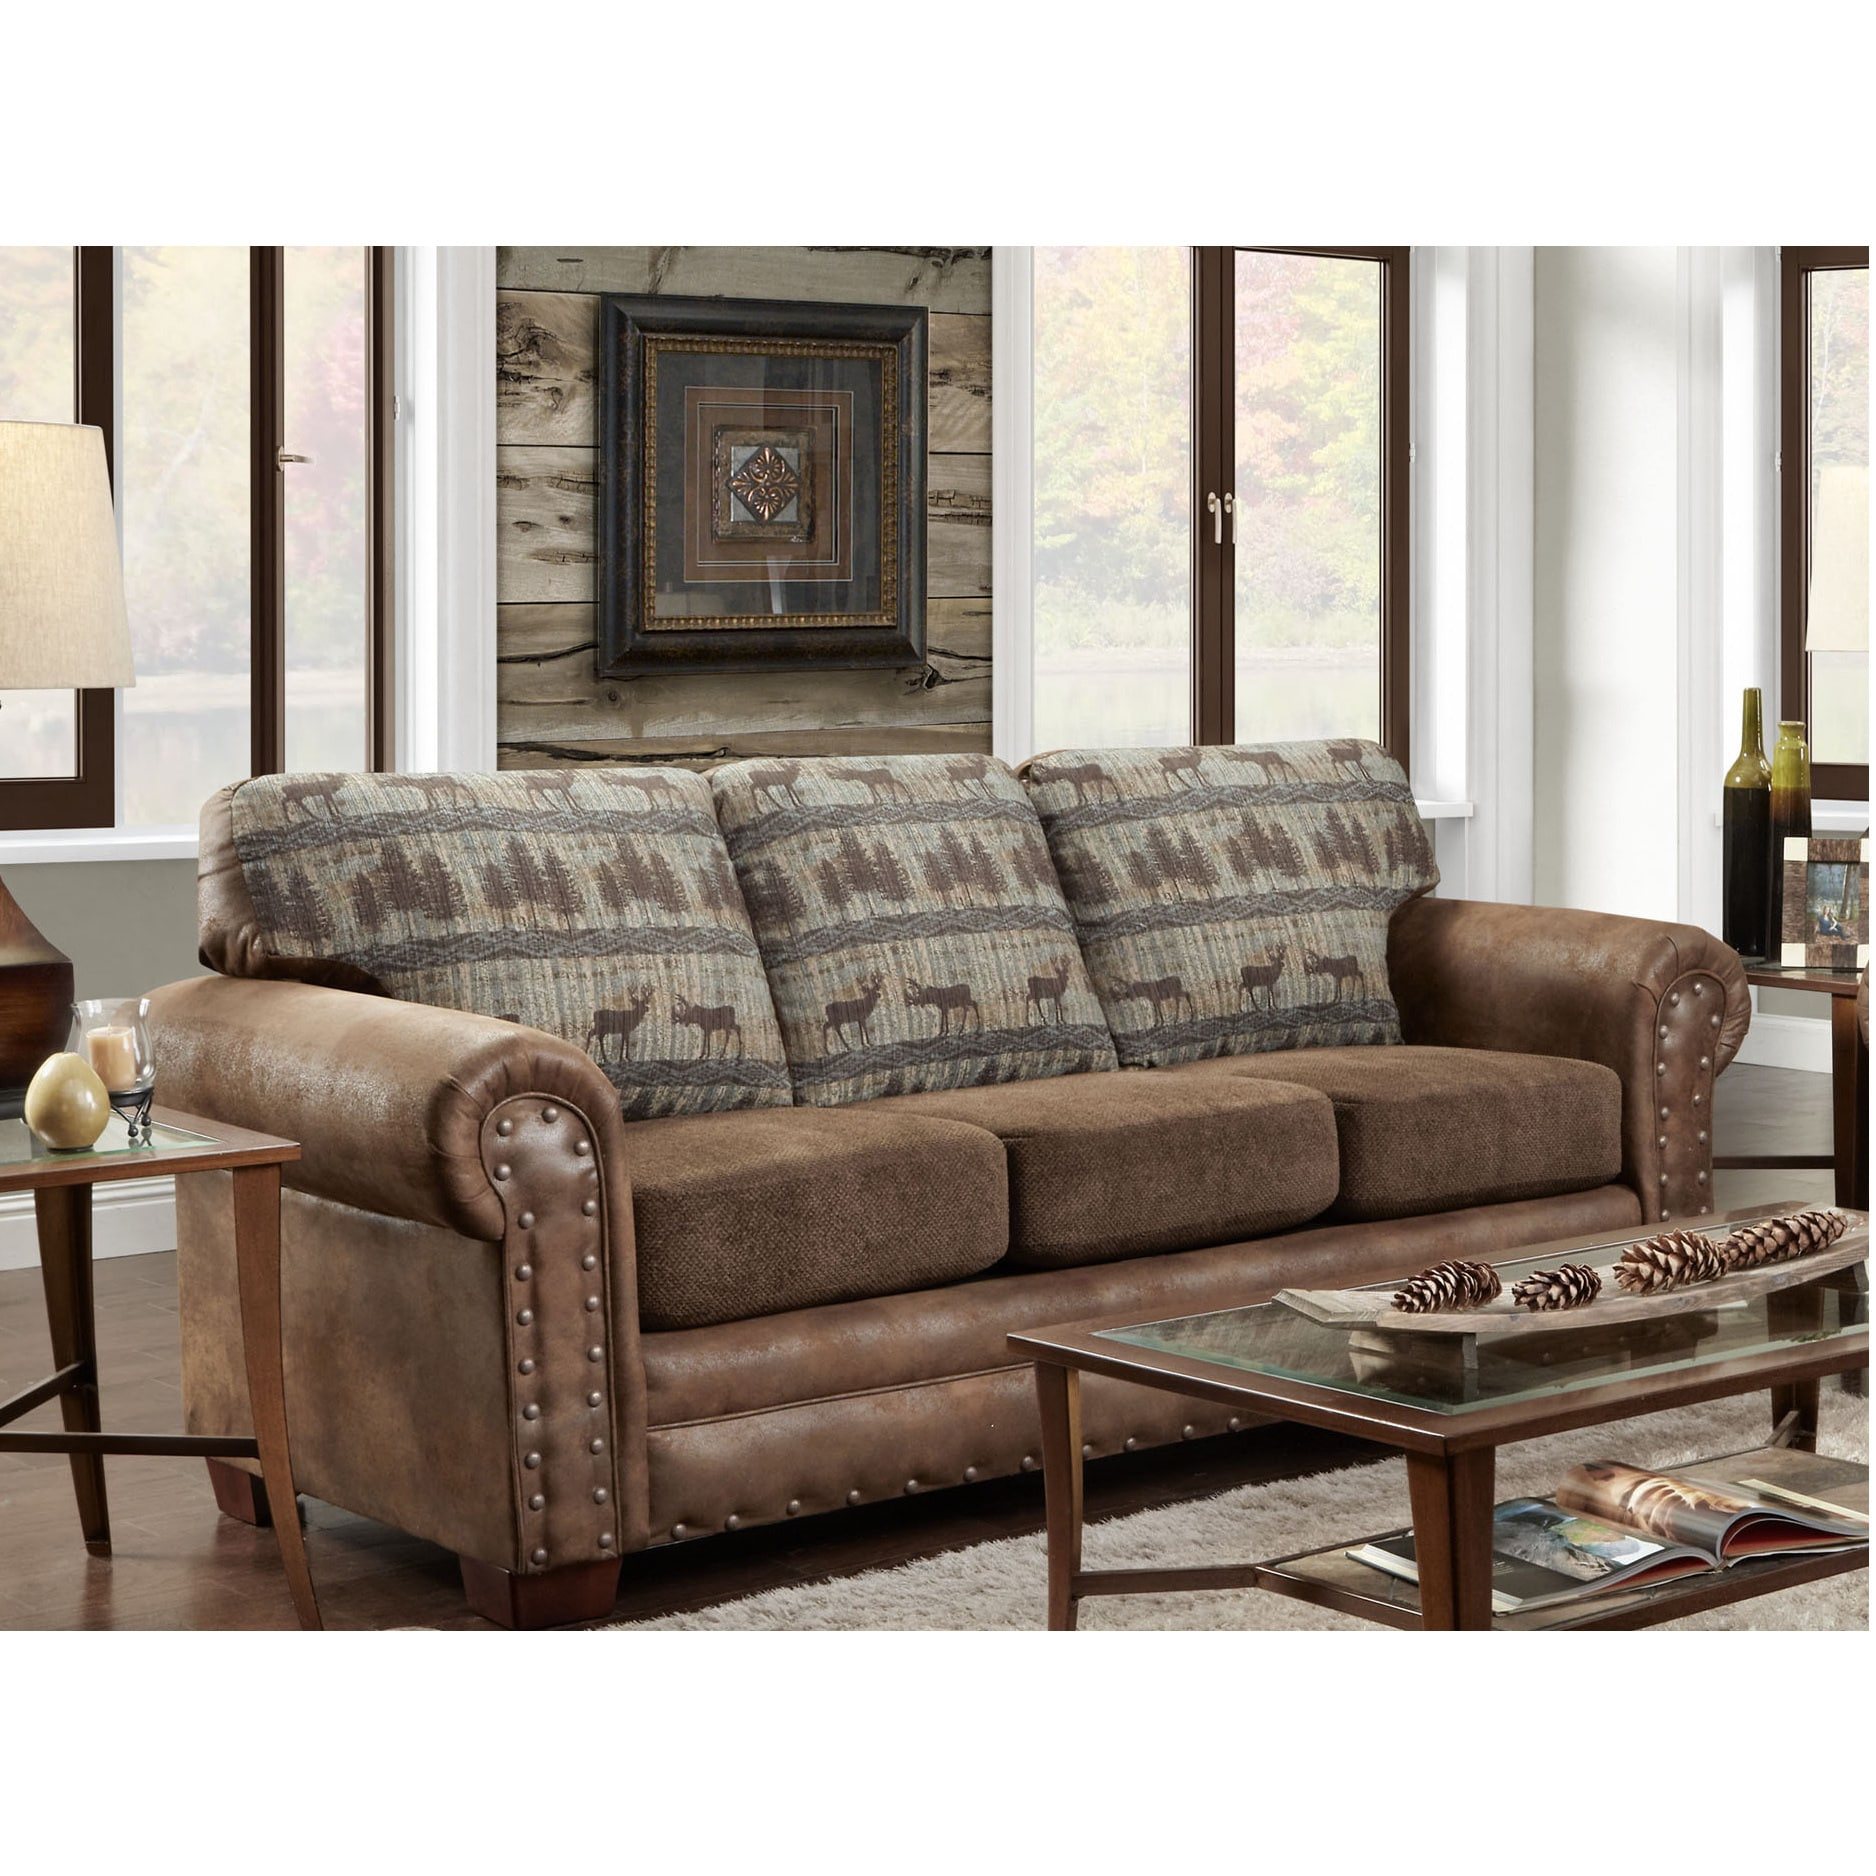 American Furniture Classics Deer Teal Lodge Tapestry Sofa Sleeper